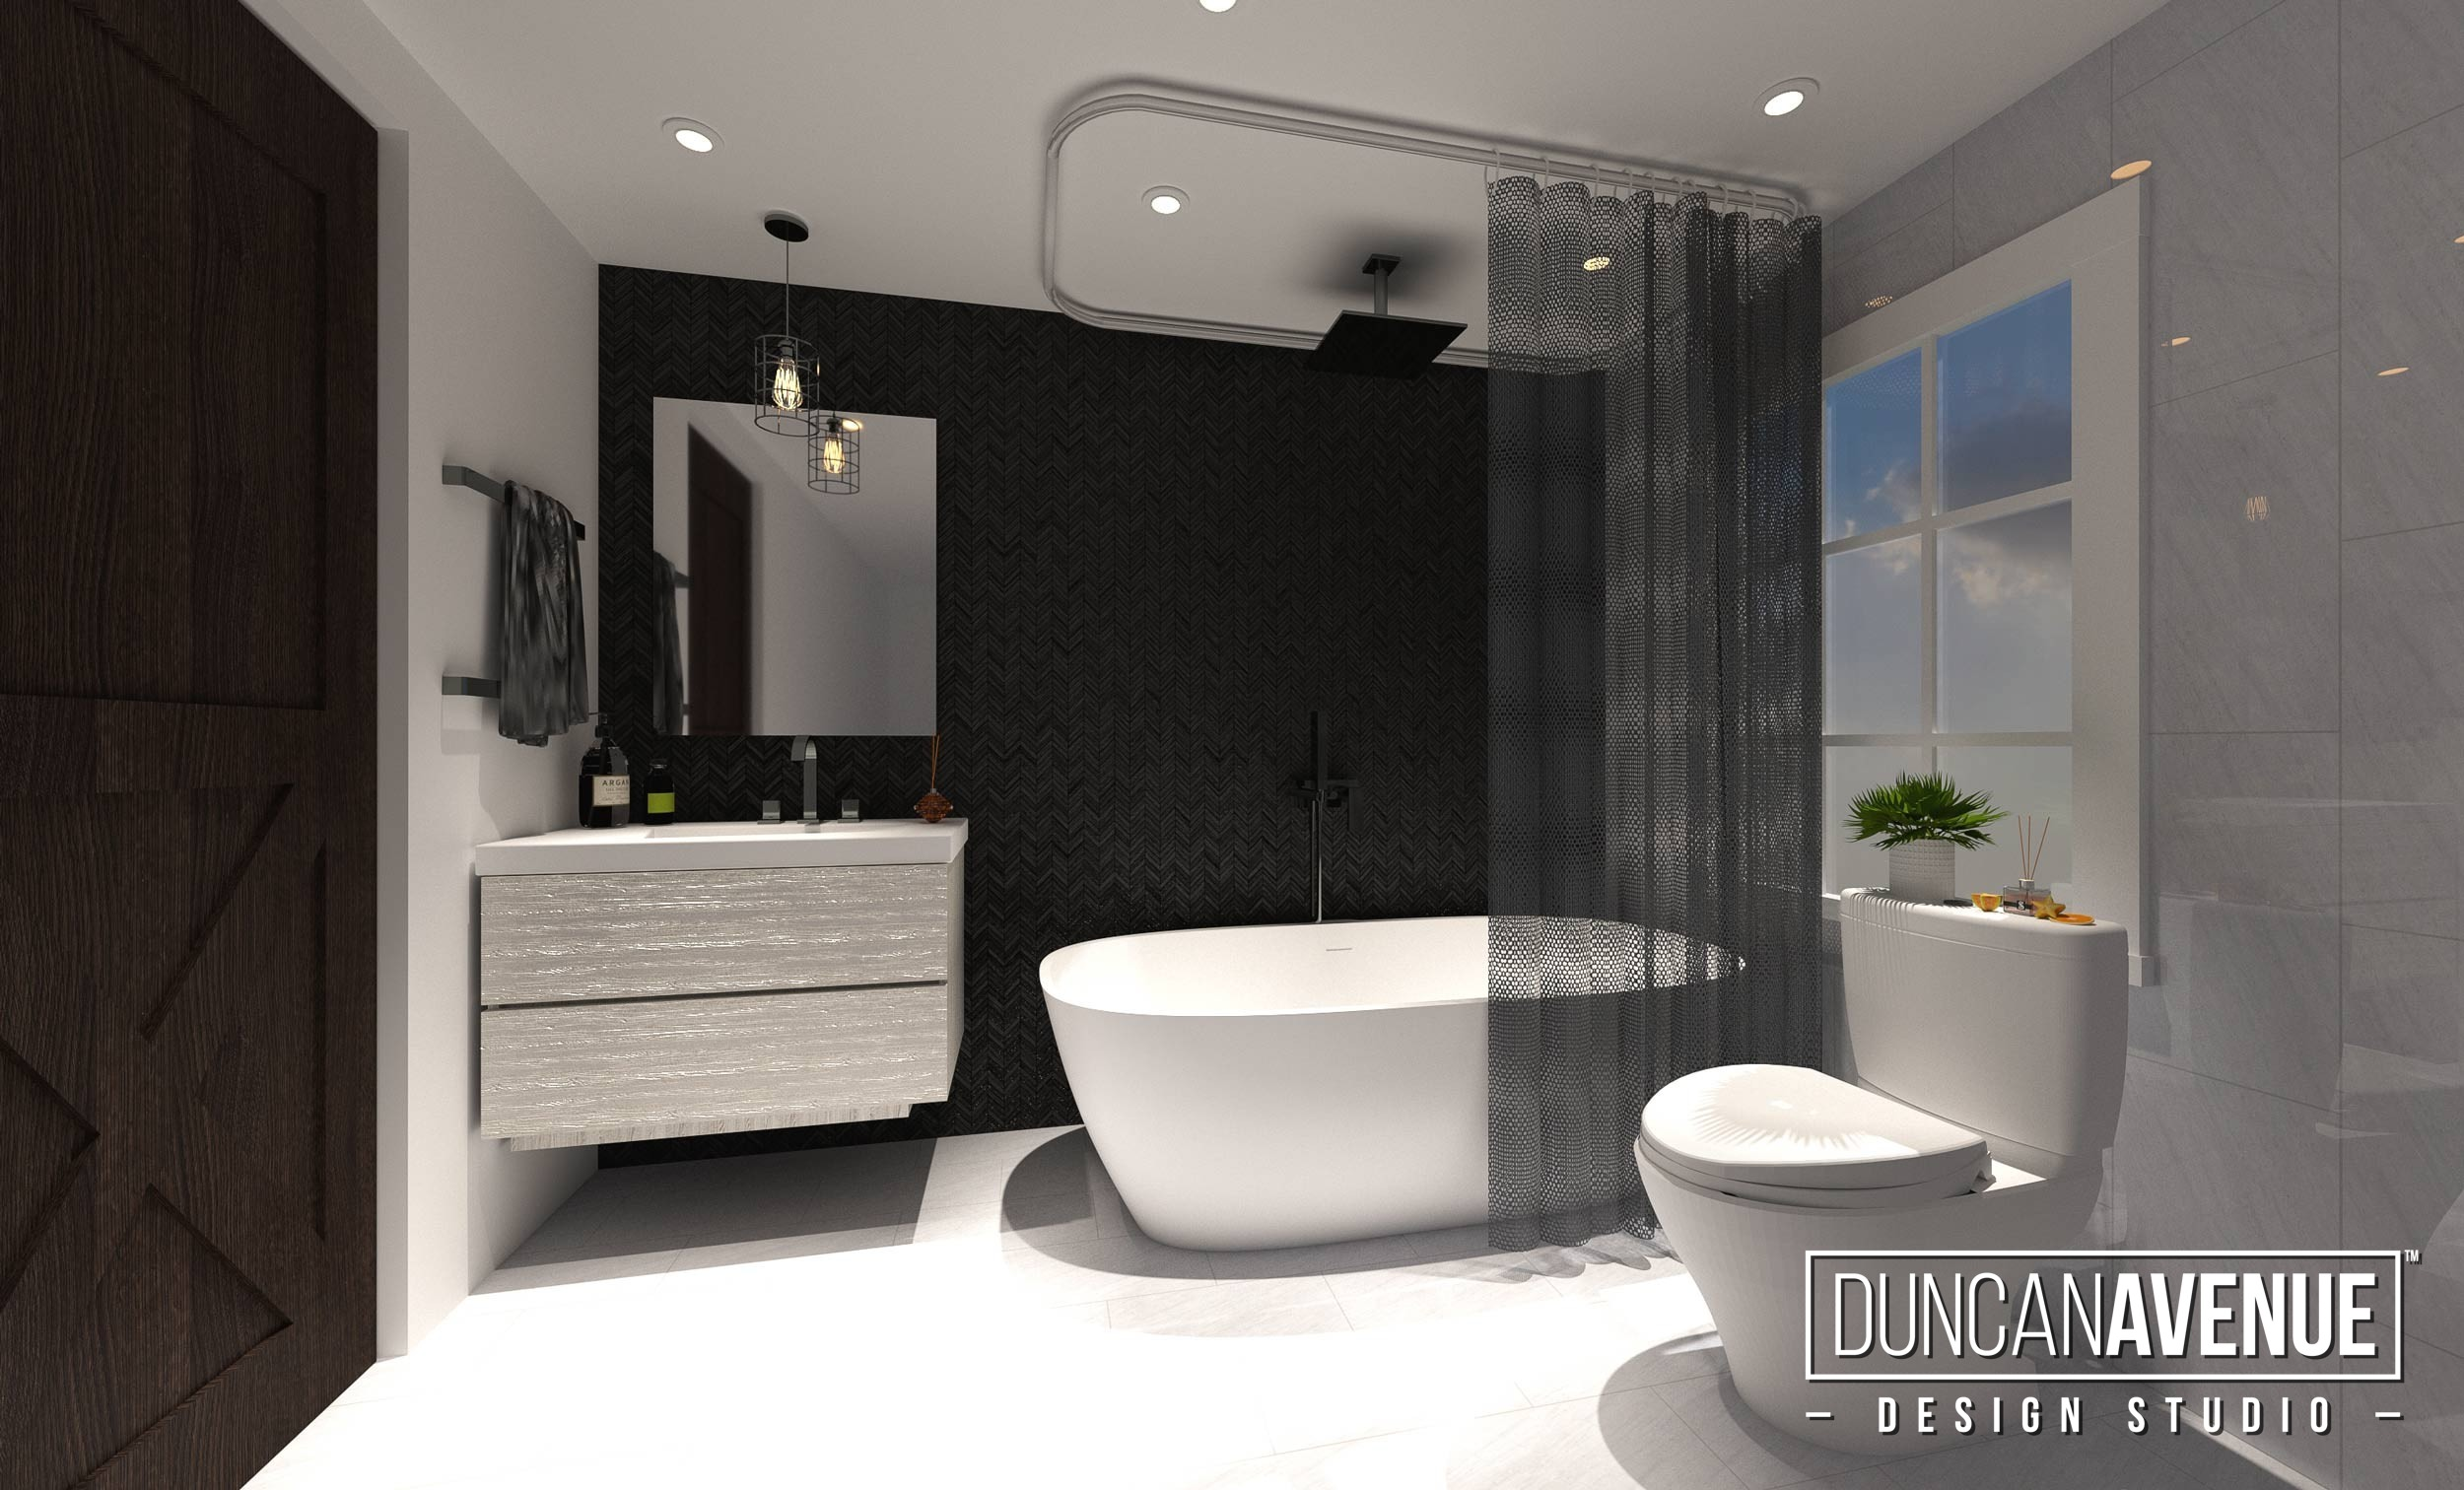 Bathroom design - Duncan Avenue Interior Design Studio - Hudson Valley - Kingston, NY